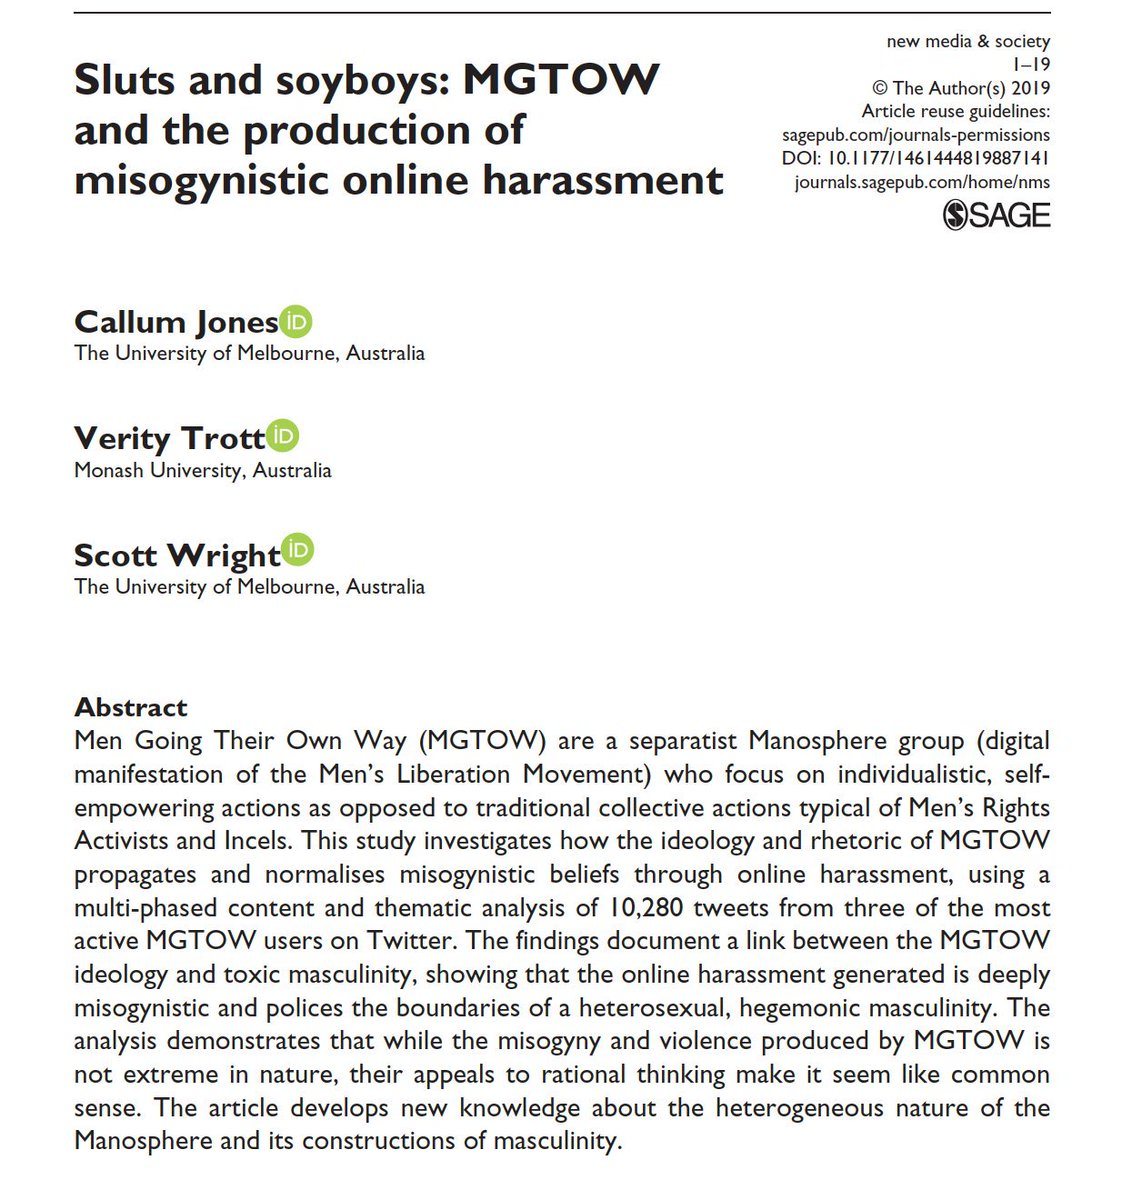 Sluts and soyboys: New research on Men Going Their Own Way (MGTOW) online, based on analysis of 10,000+ tweets, documents their misogyny (women-hating and sexism), online harassment, and policing of the boundaries of traditional heterosexual masculinity. journals.sagepub.com/doi/full/10.11…